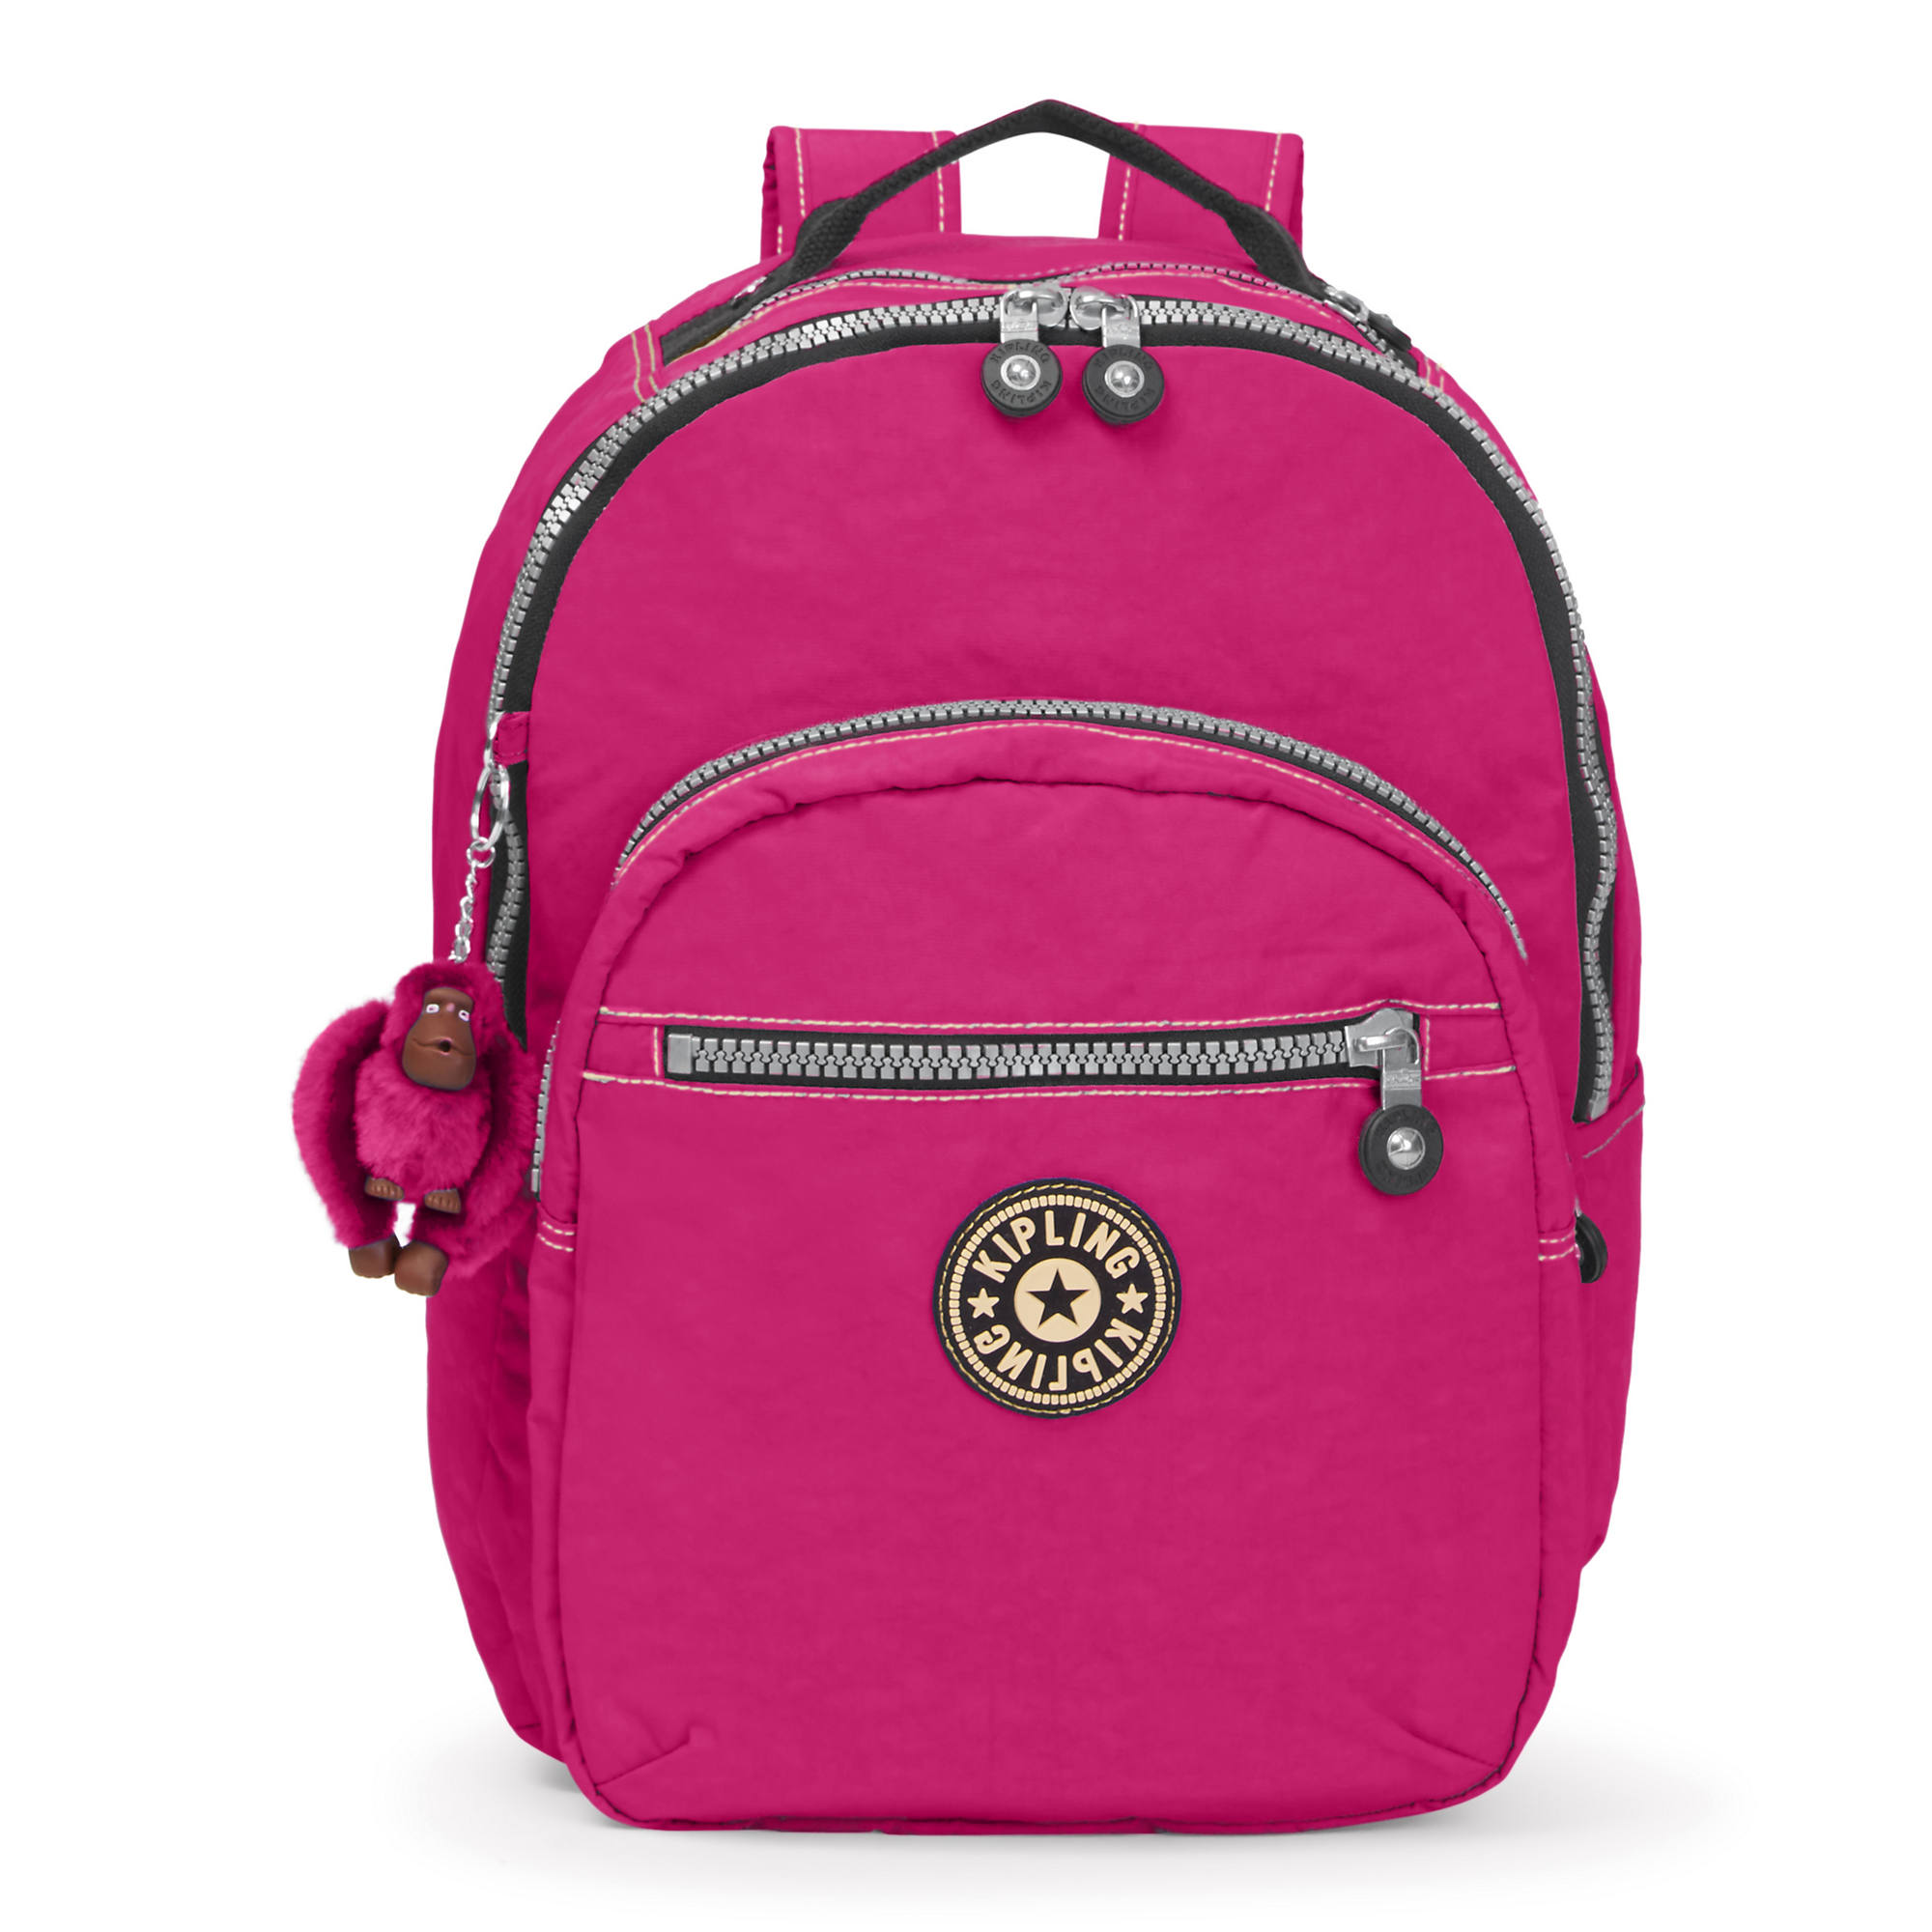 Shop Kipling backpacks at Macy's and get FREE SHIPPING on all orders +$ Browse our wide collection of designer backpacks, purses & more.